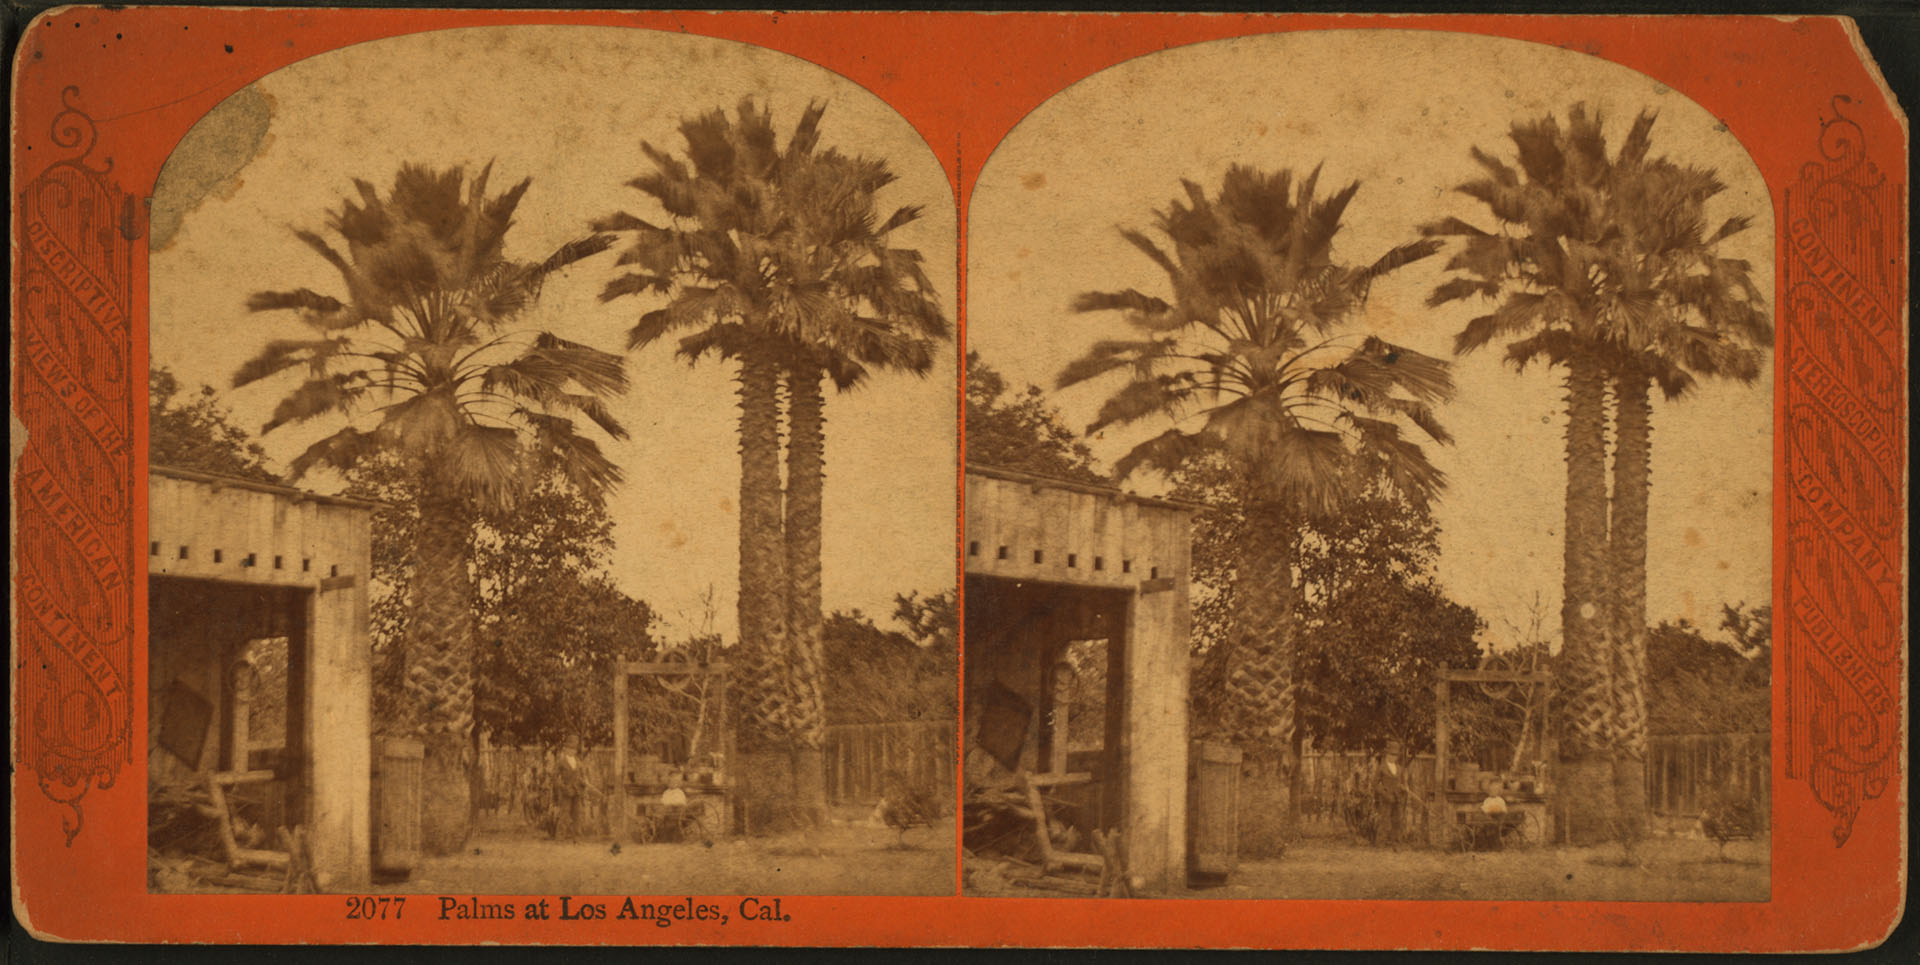 Palms at Los Angeles, Cal.